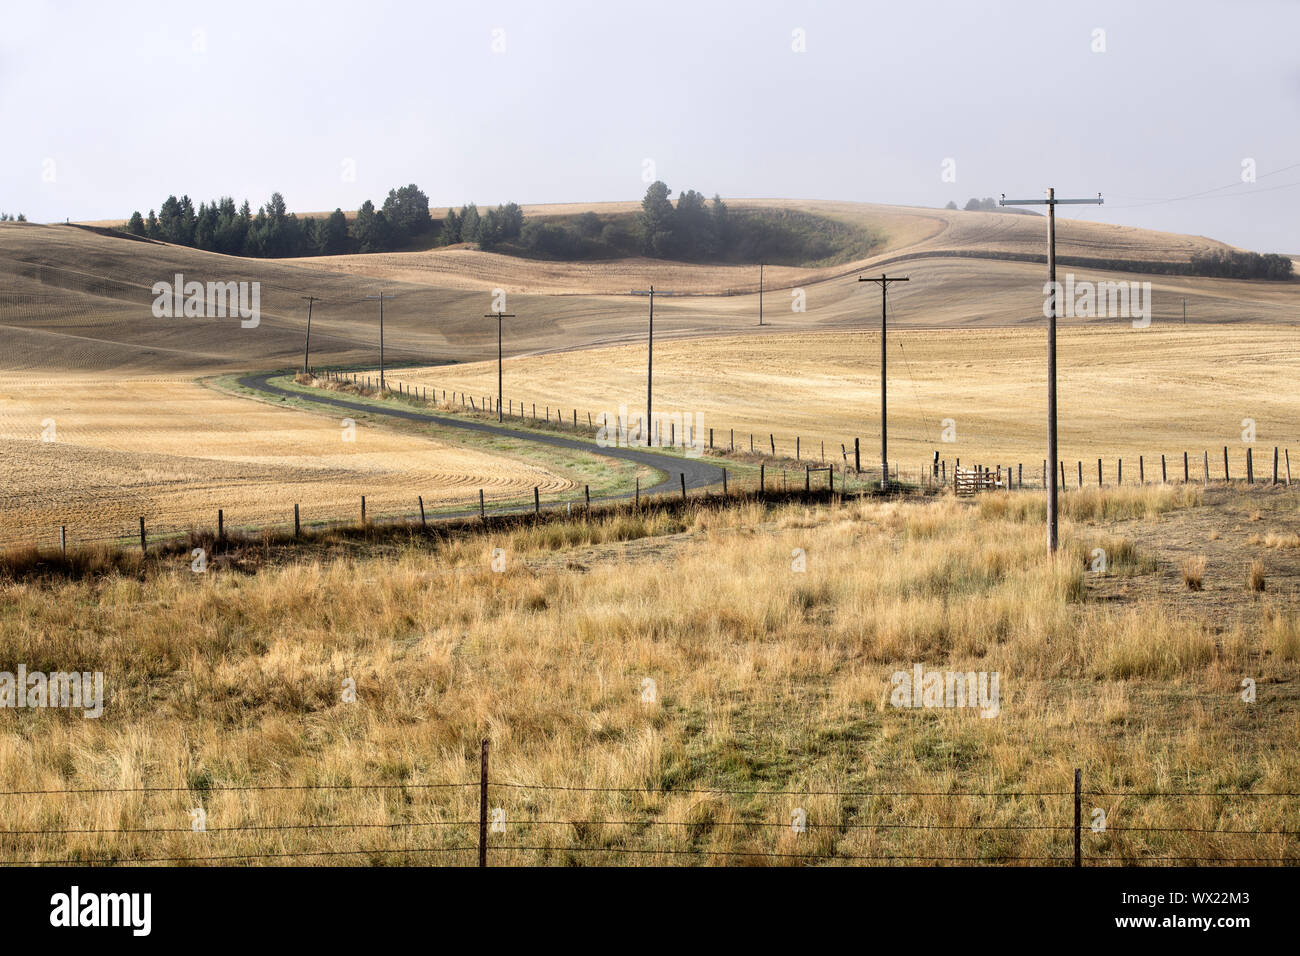 A winding country road cutting through the landscape of the palouse region in eastern Washington. Stock Photo